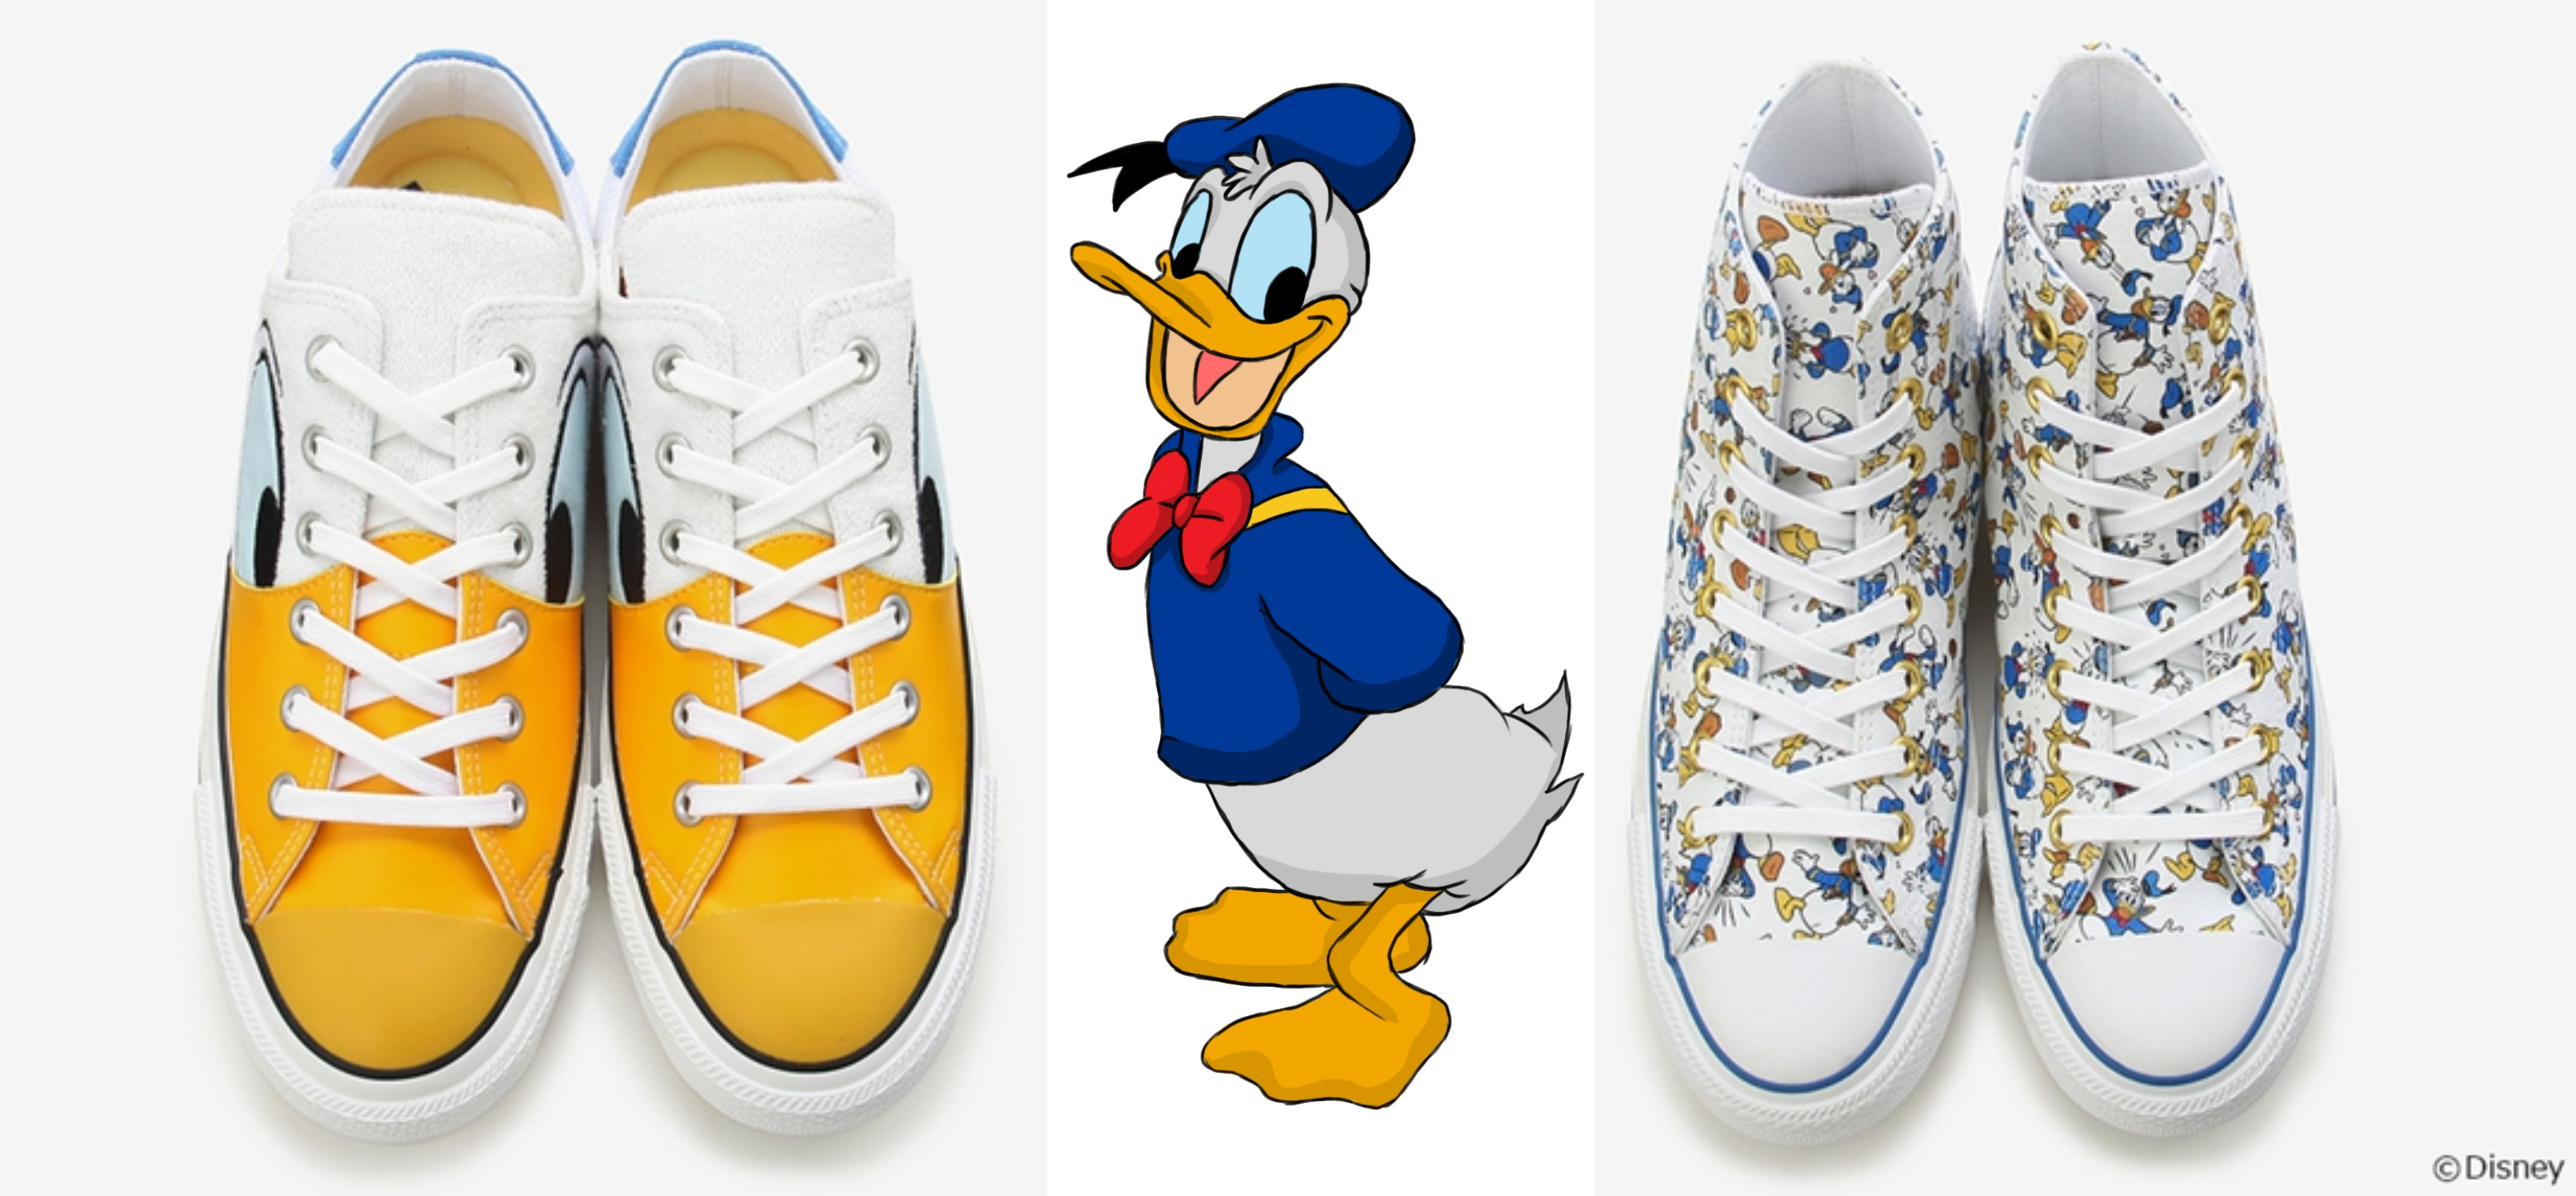 745d87e8e010 Here s The First Look At Converse x Disney Donald Duck 100th Anniversary  Collection